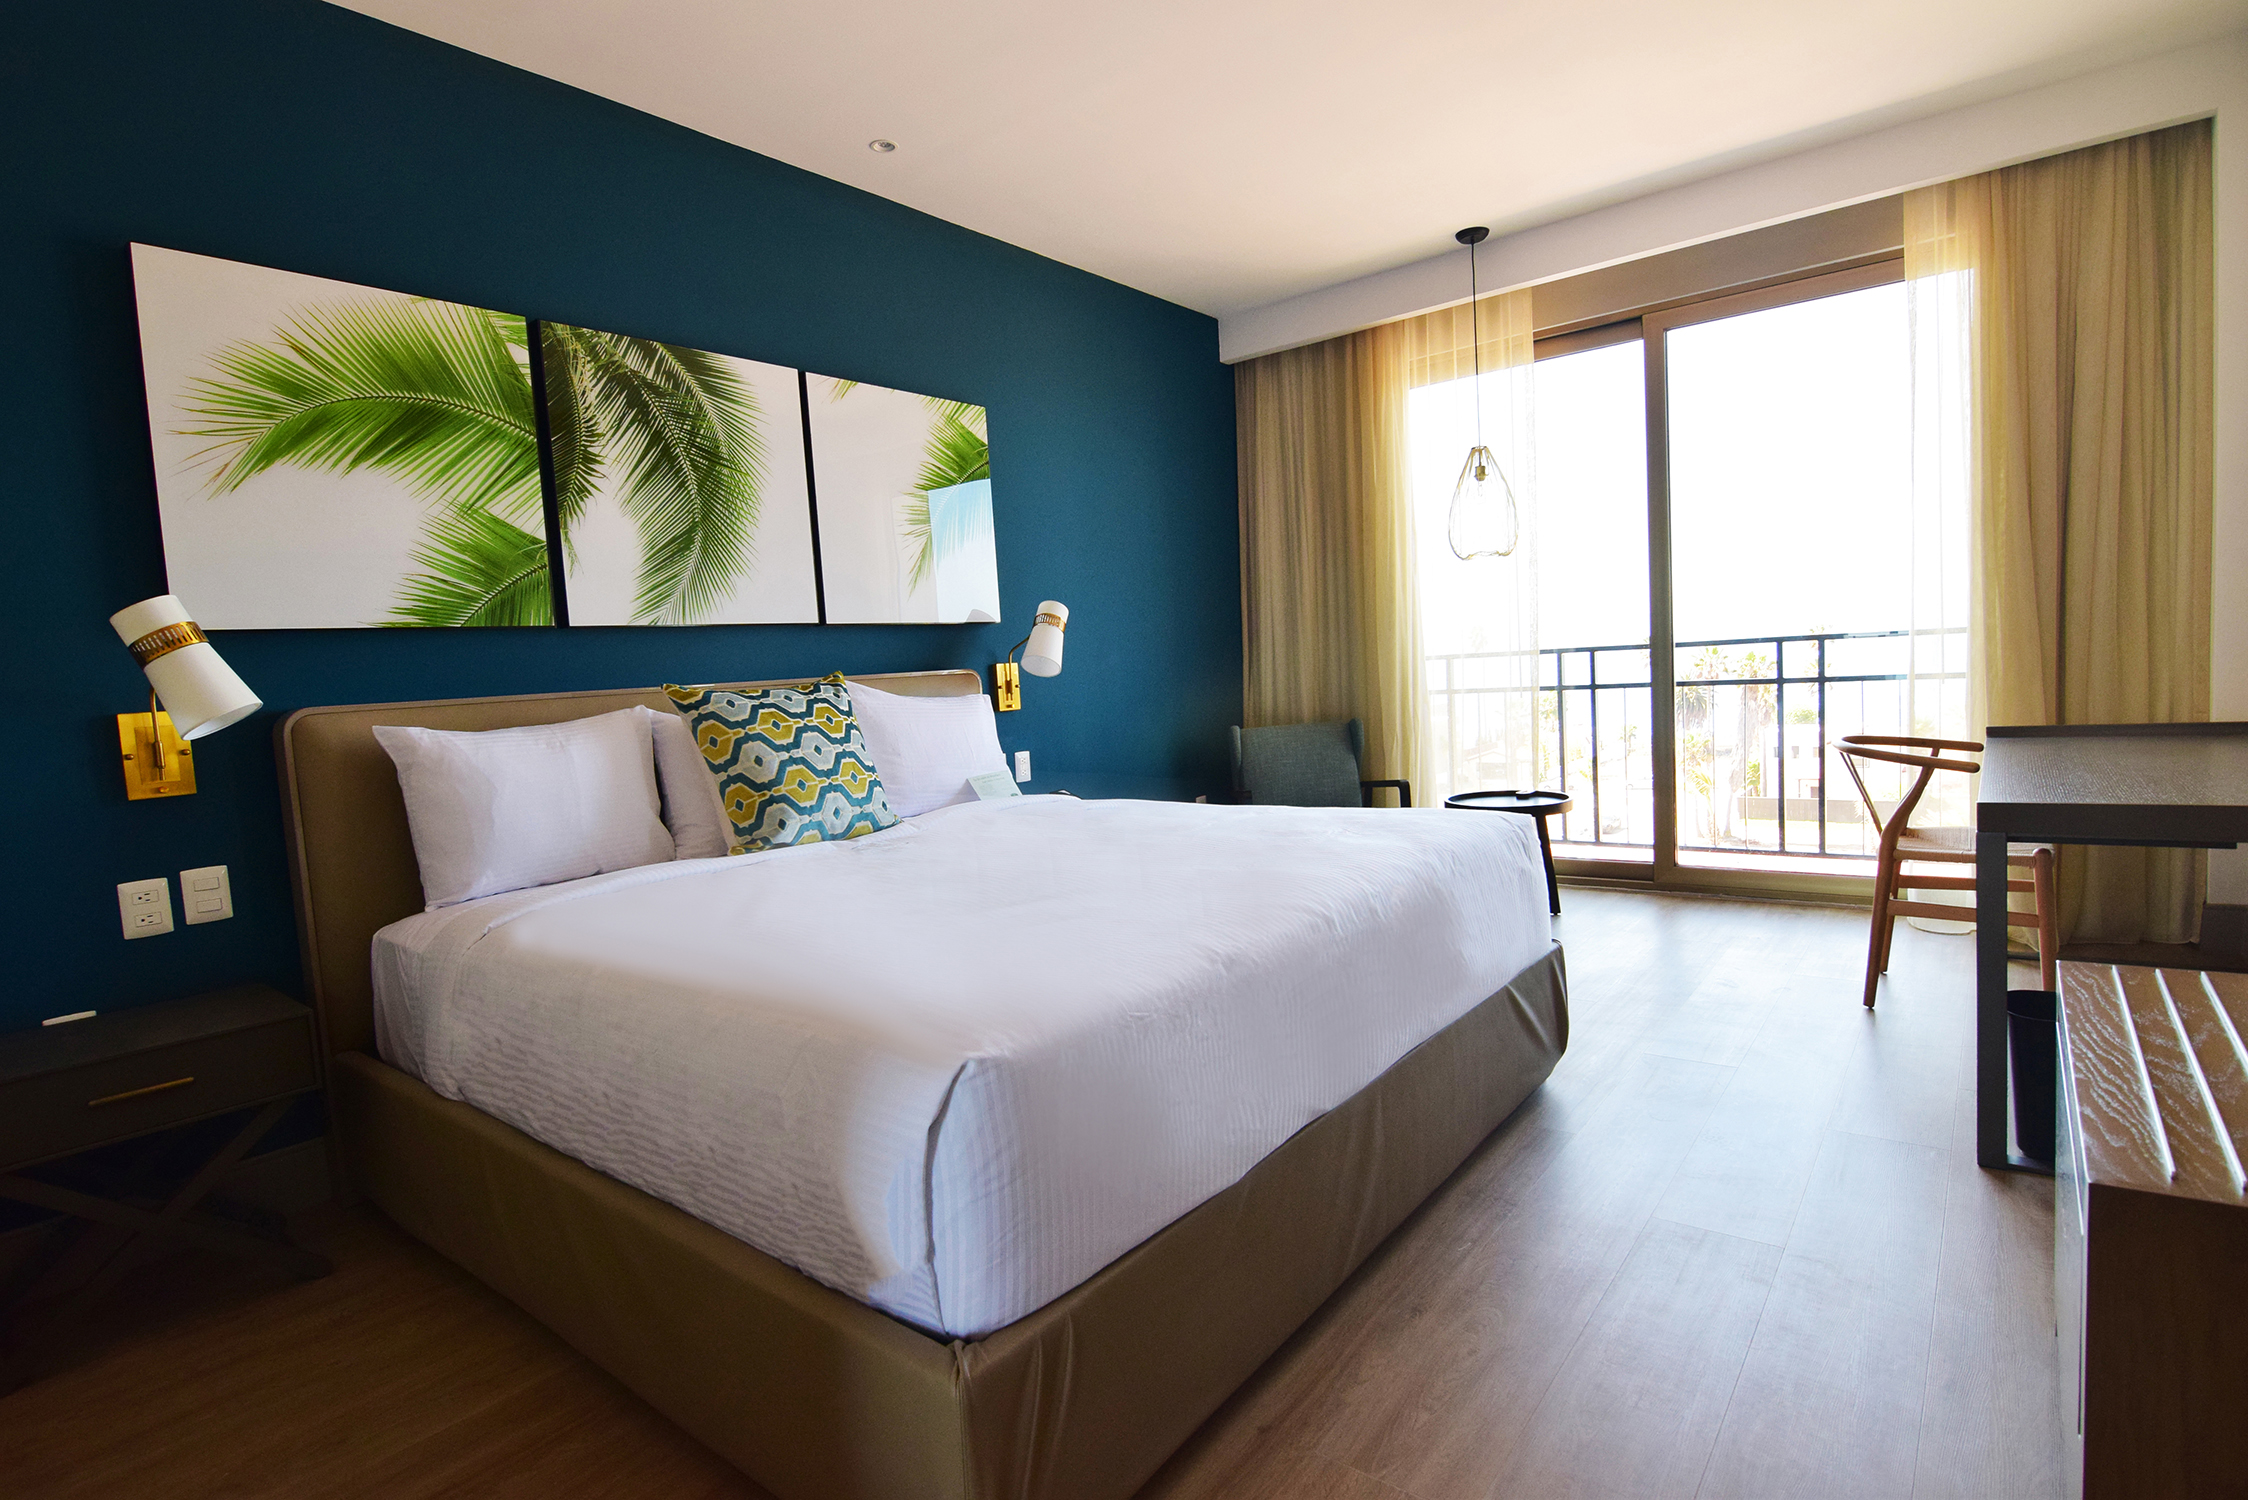 You're sure to feel cozy after a day of wine and food in your hotel's bed with feather-like pillows and European-style duvet. All rooms in this elegant oceanfront hotel have been well appointed with comfortable and luxurious touches, and modern amenities.